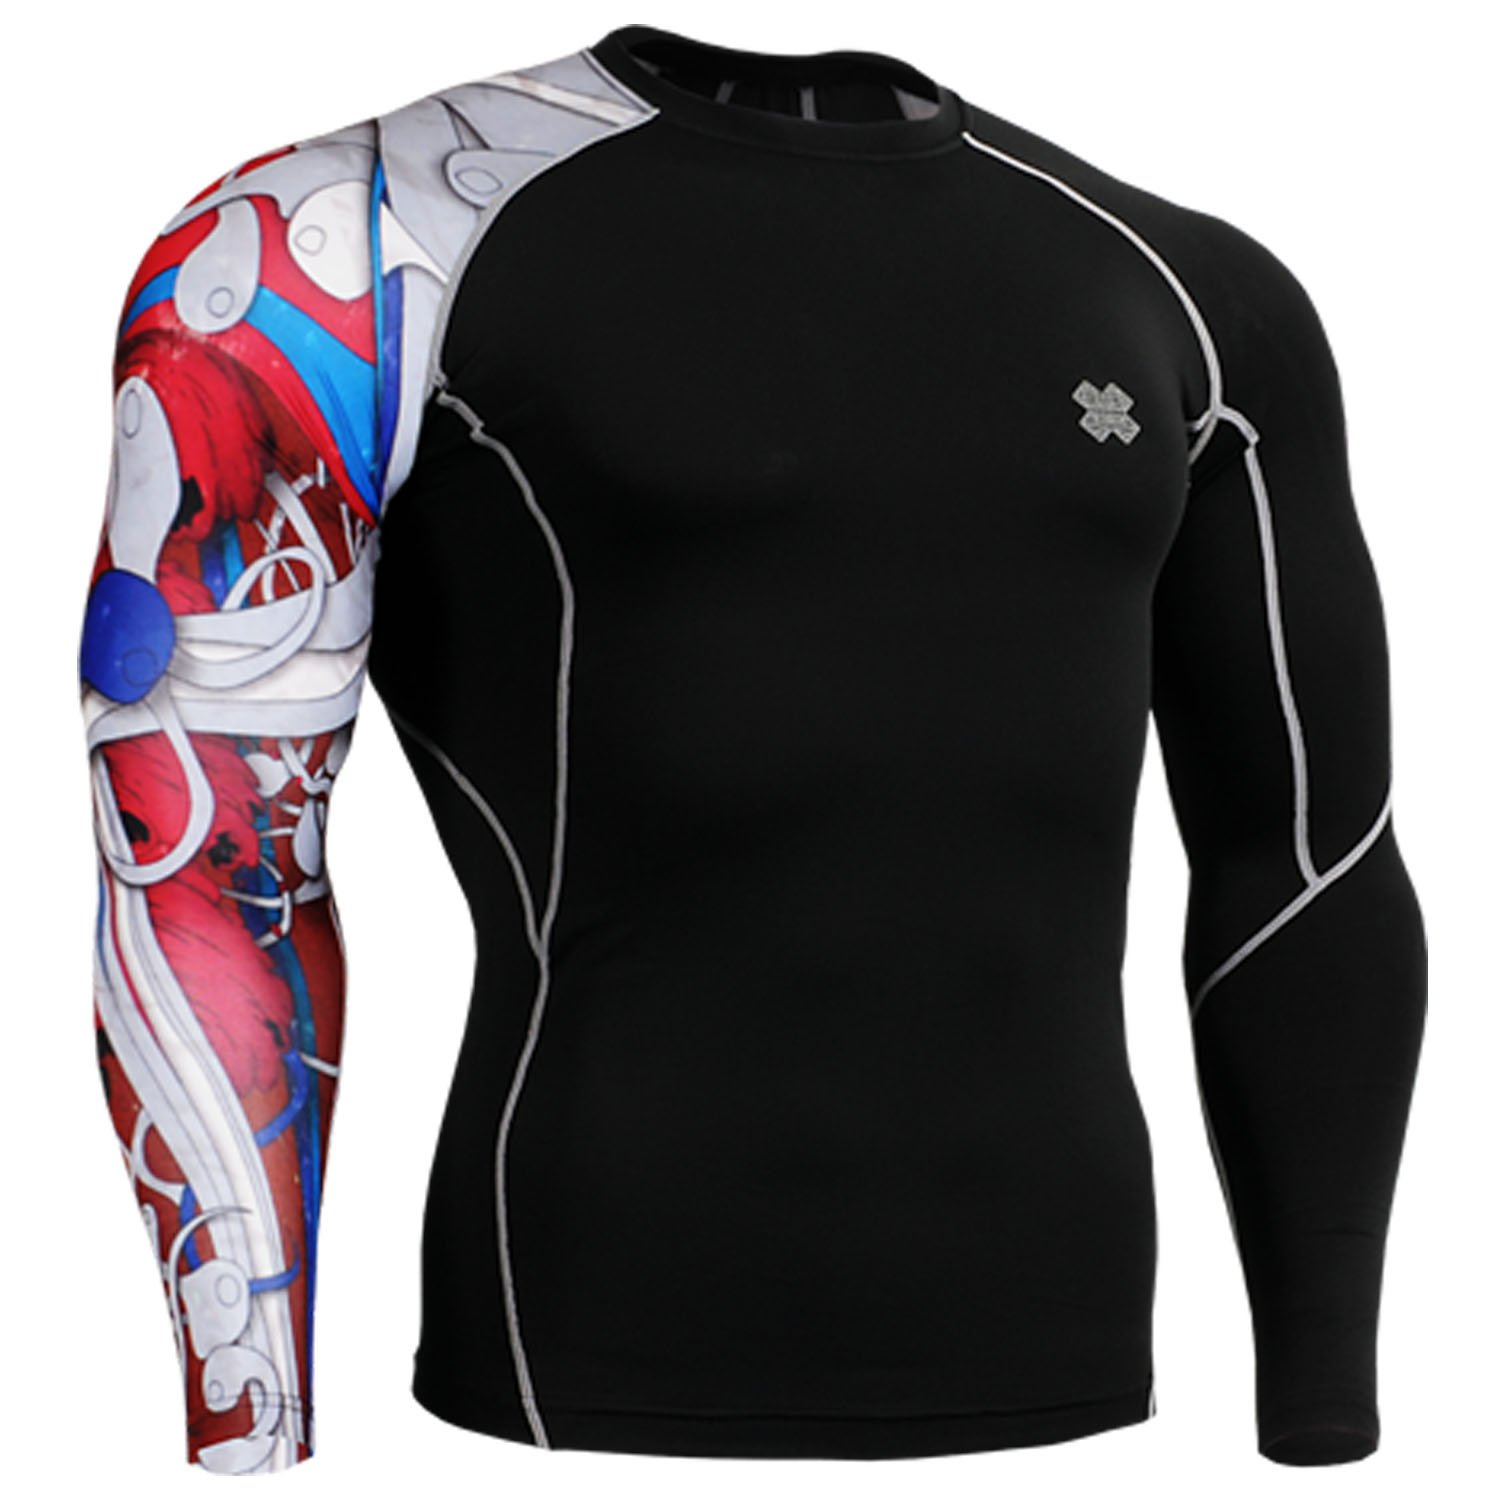 Fixgear men women under compression body armour base layer shirt long sleeve l